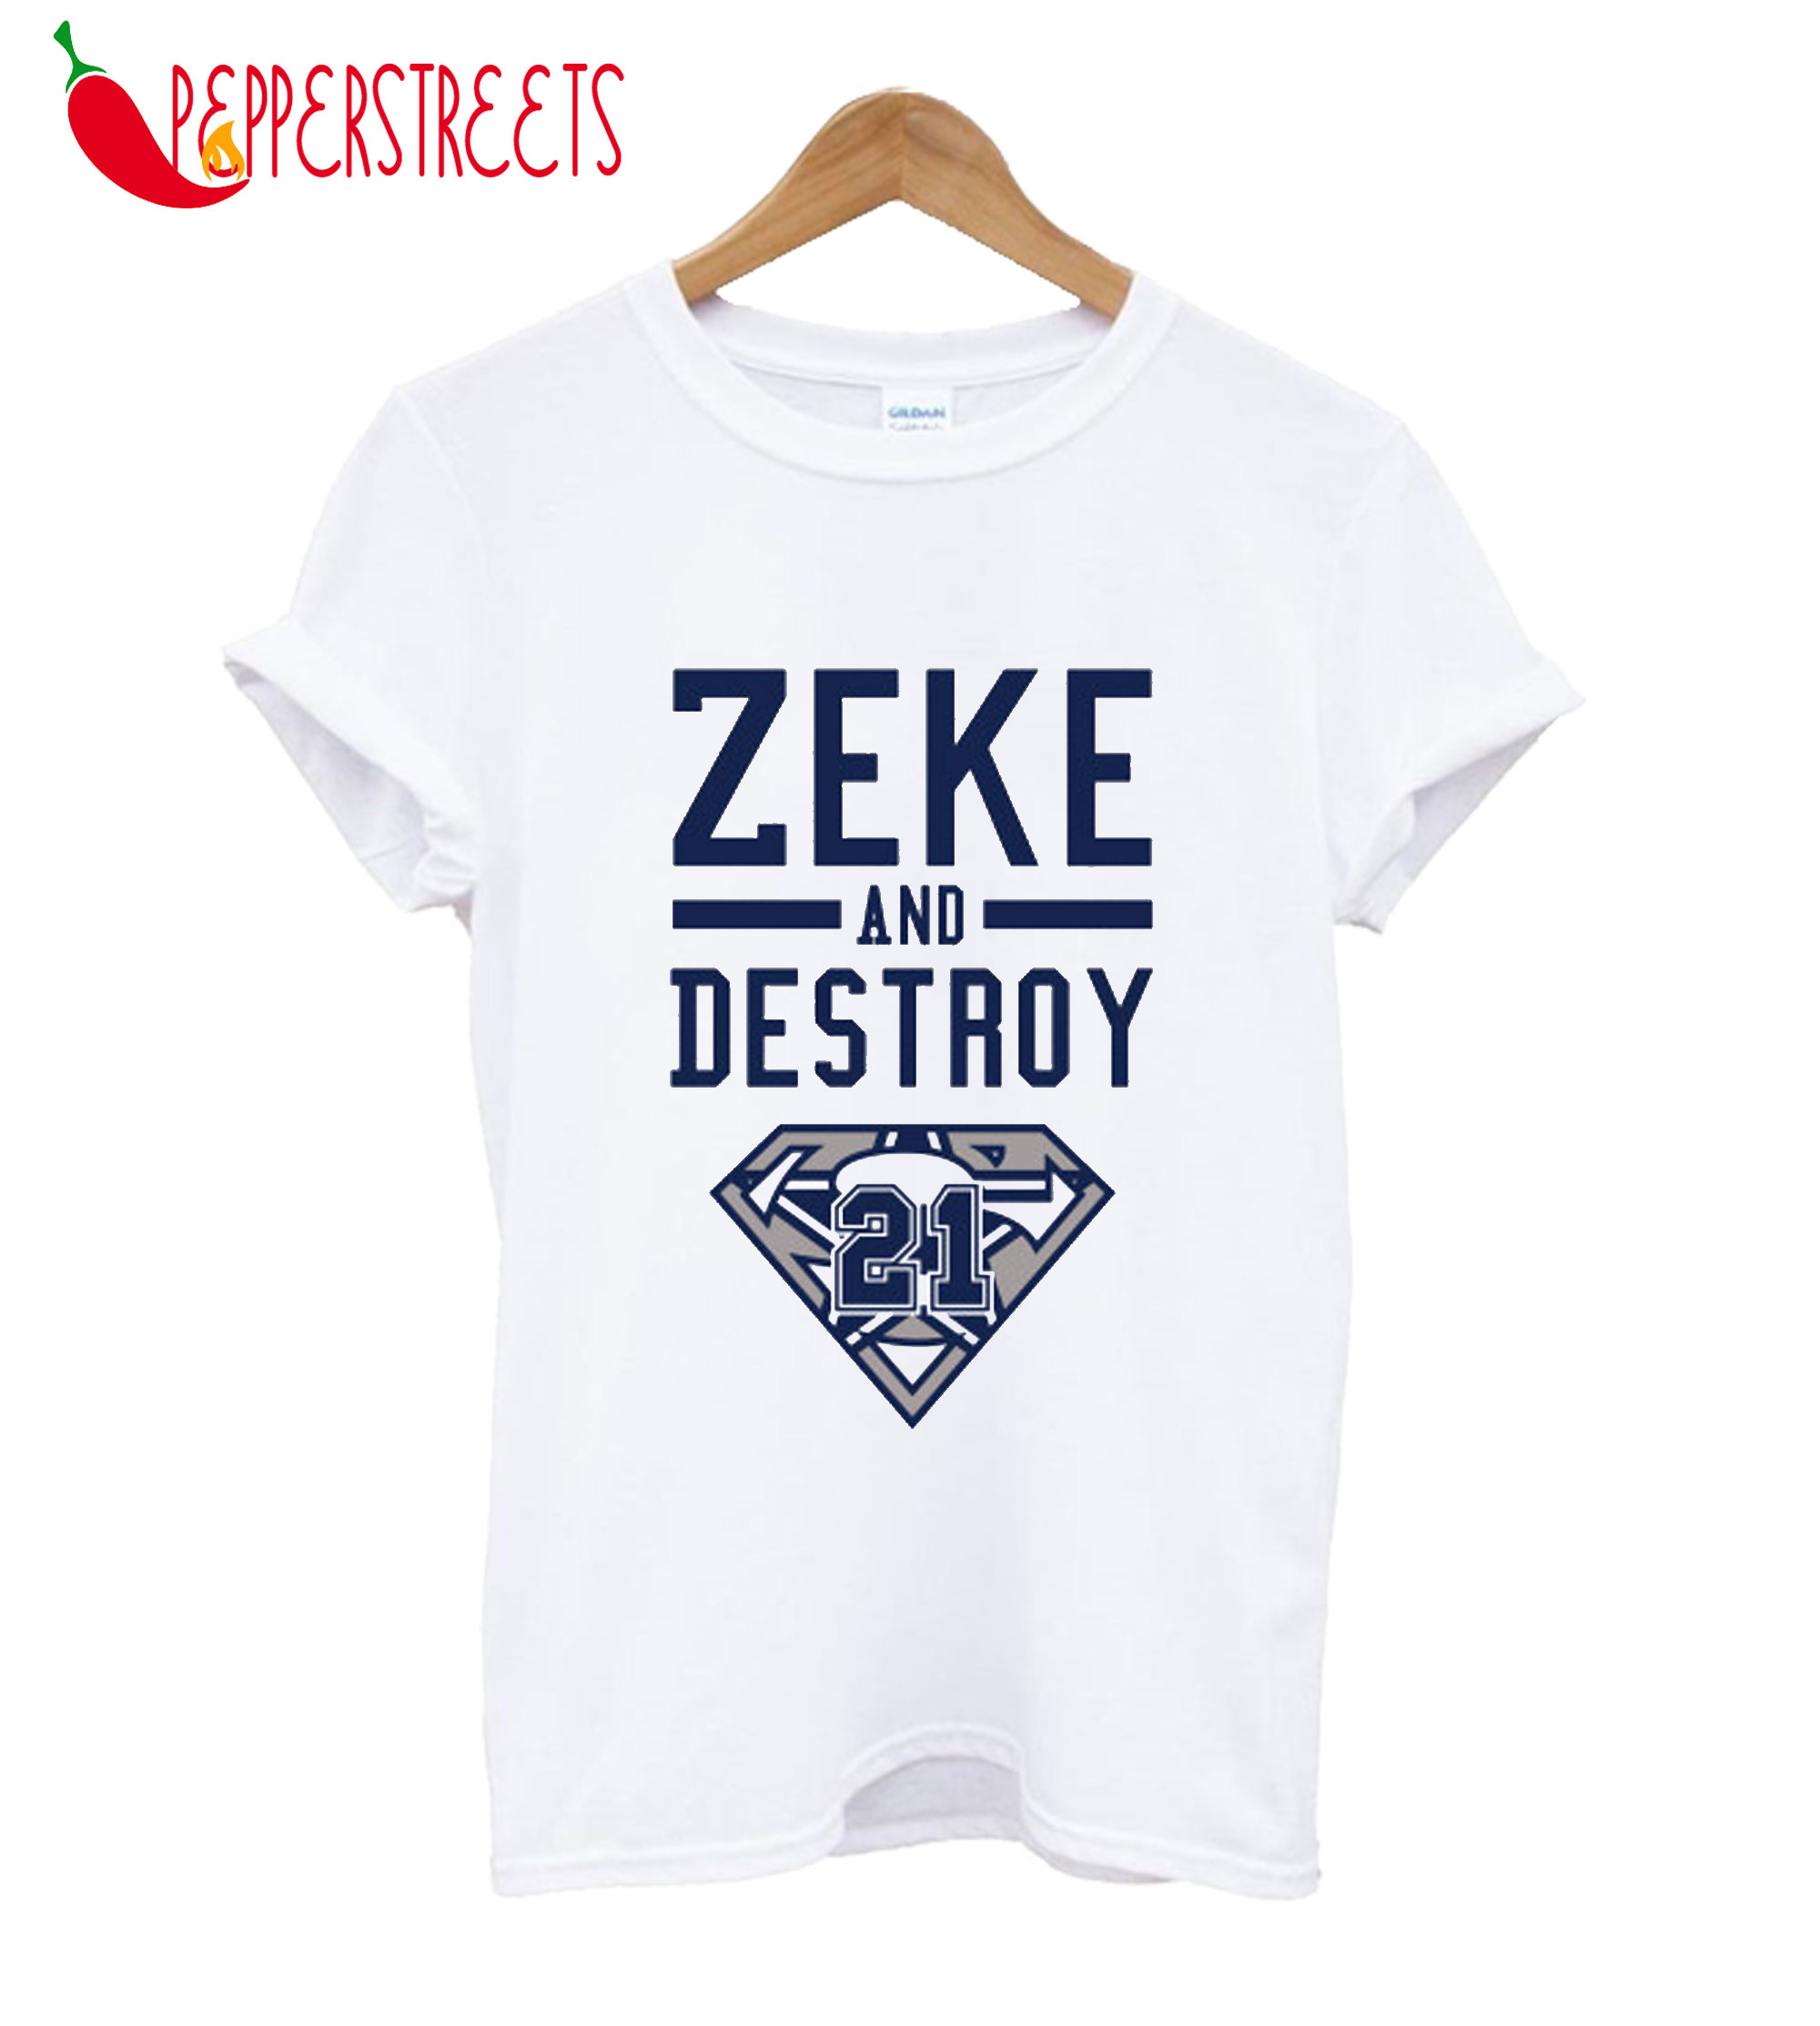 Zeke And Destroy 21 T-Shirt